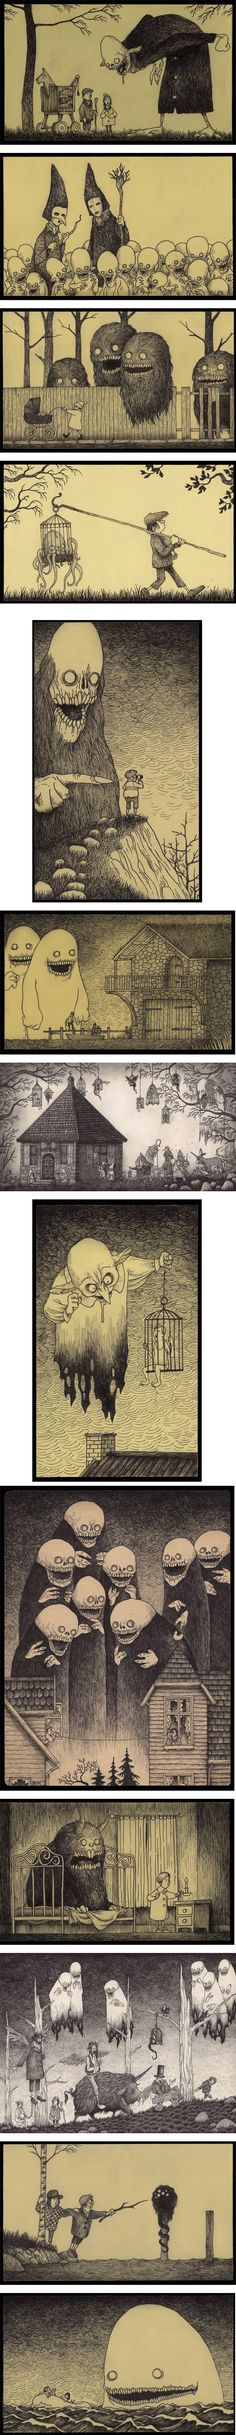 John #Kenn - Post-it Monstres